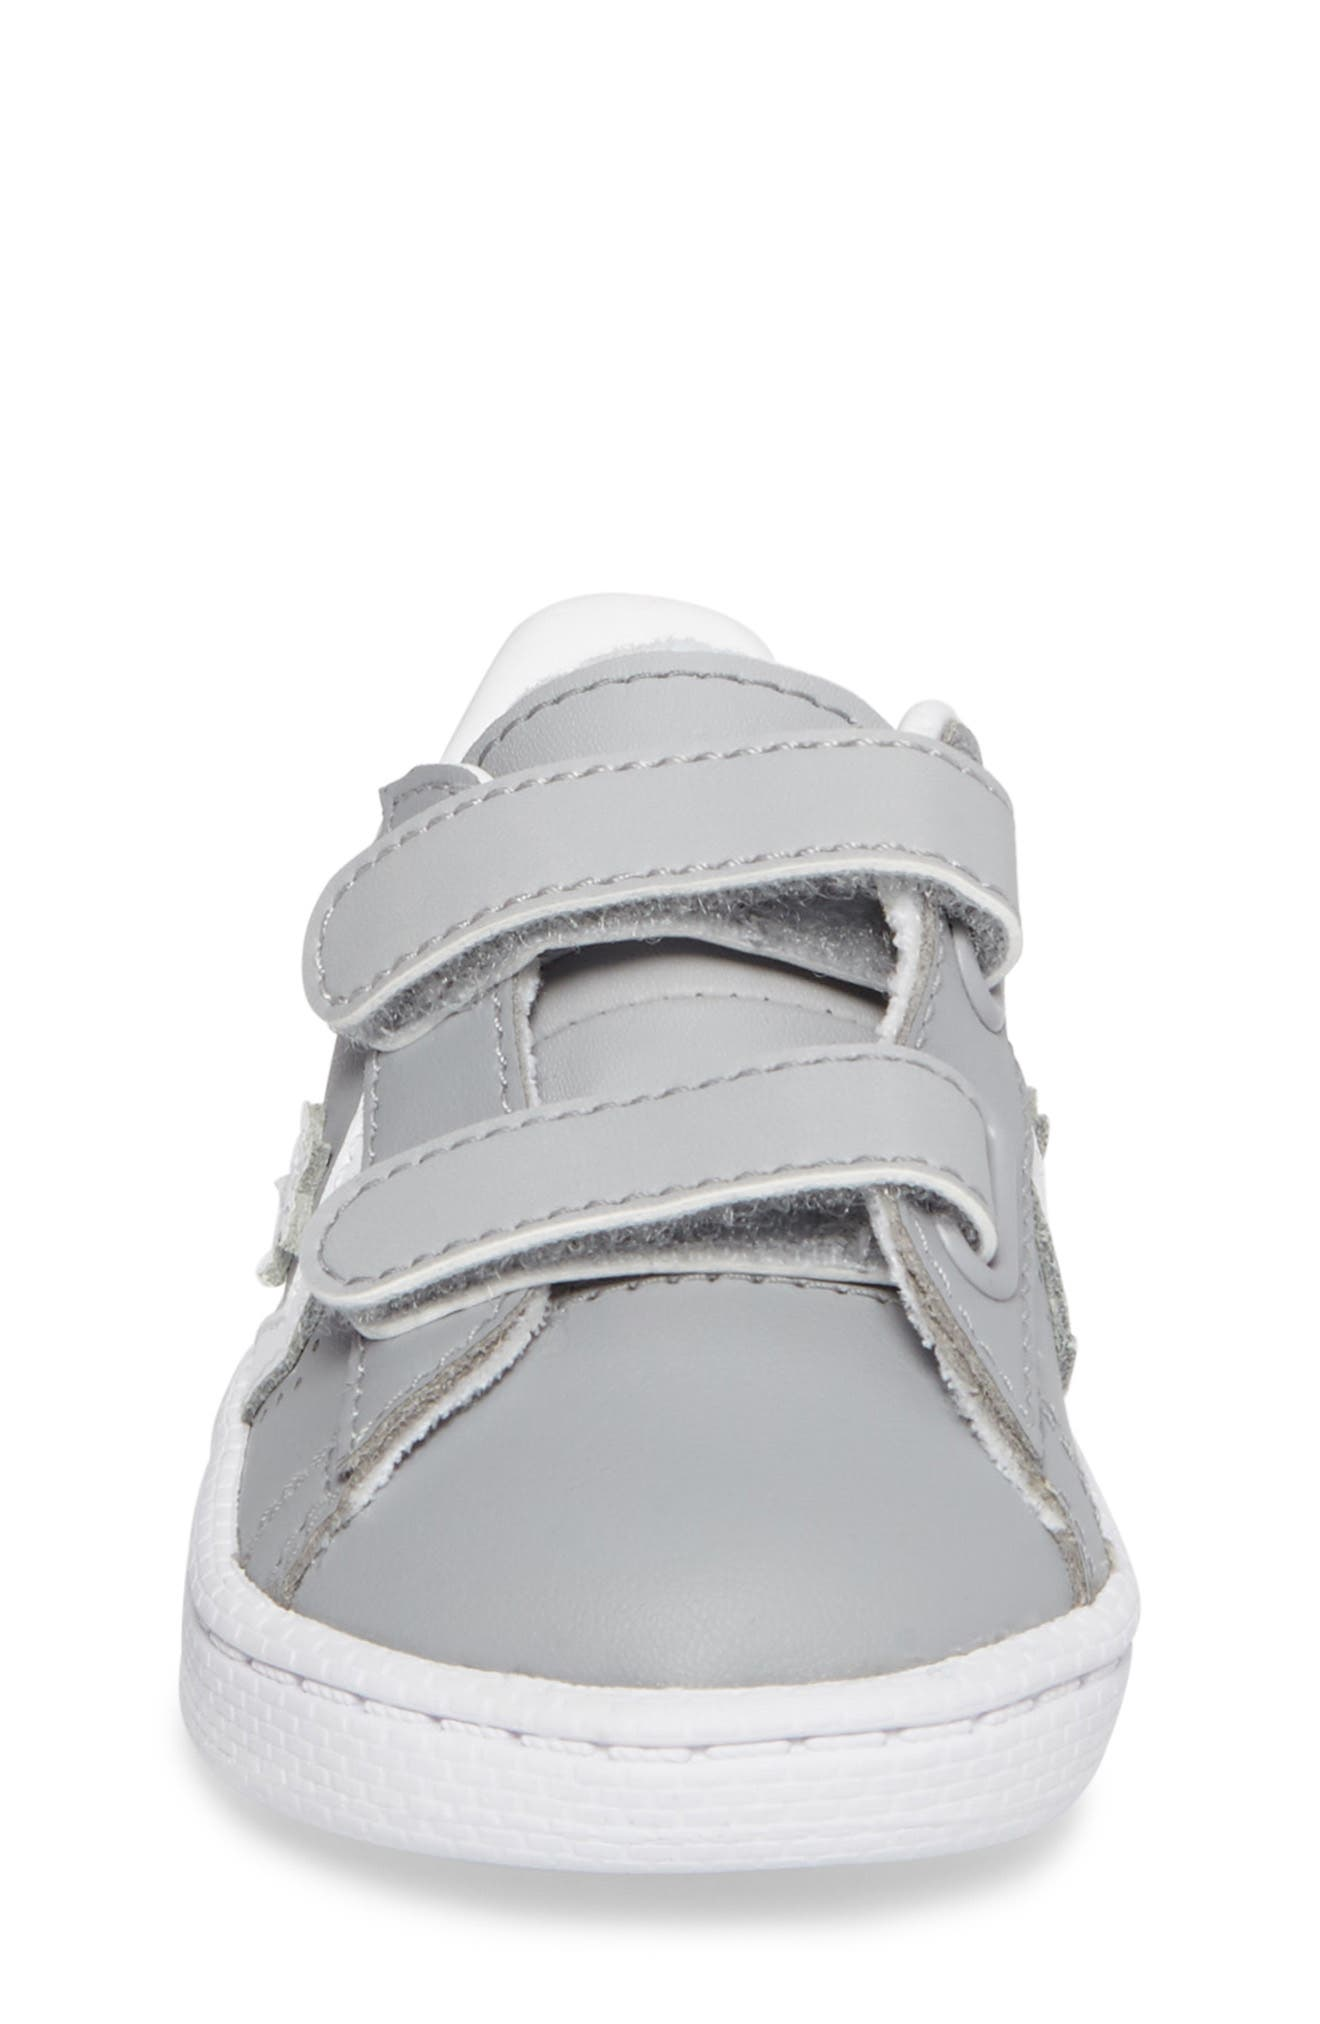 Pro Leather Low Top Sneaker,                             Alternate thumbnail 4, color,                             097